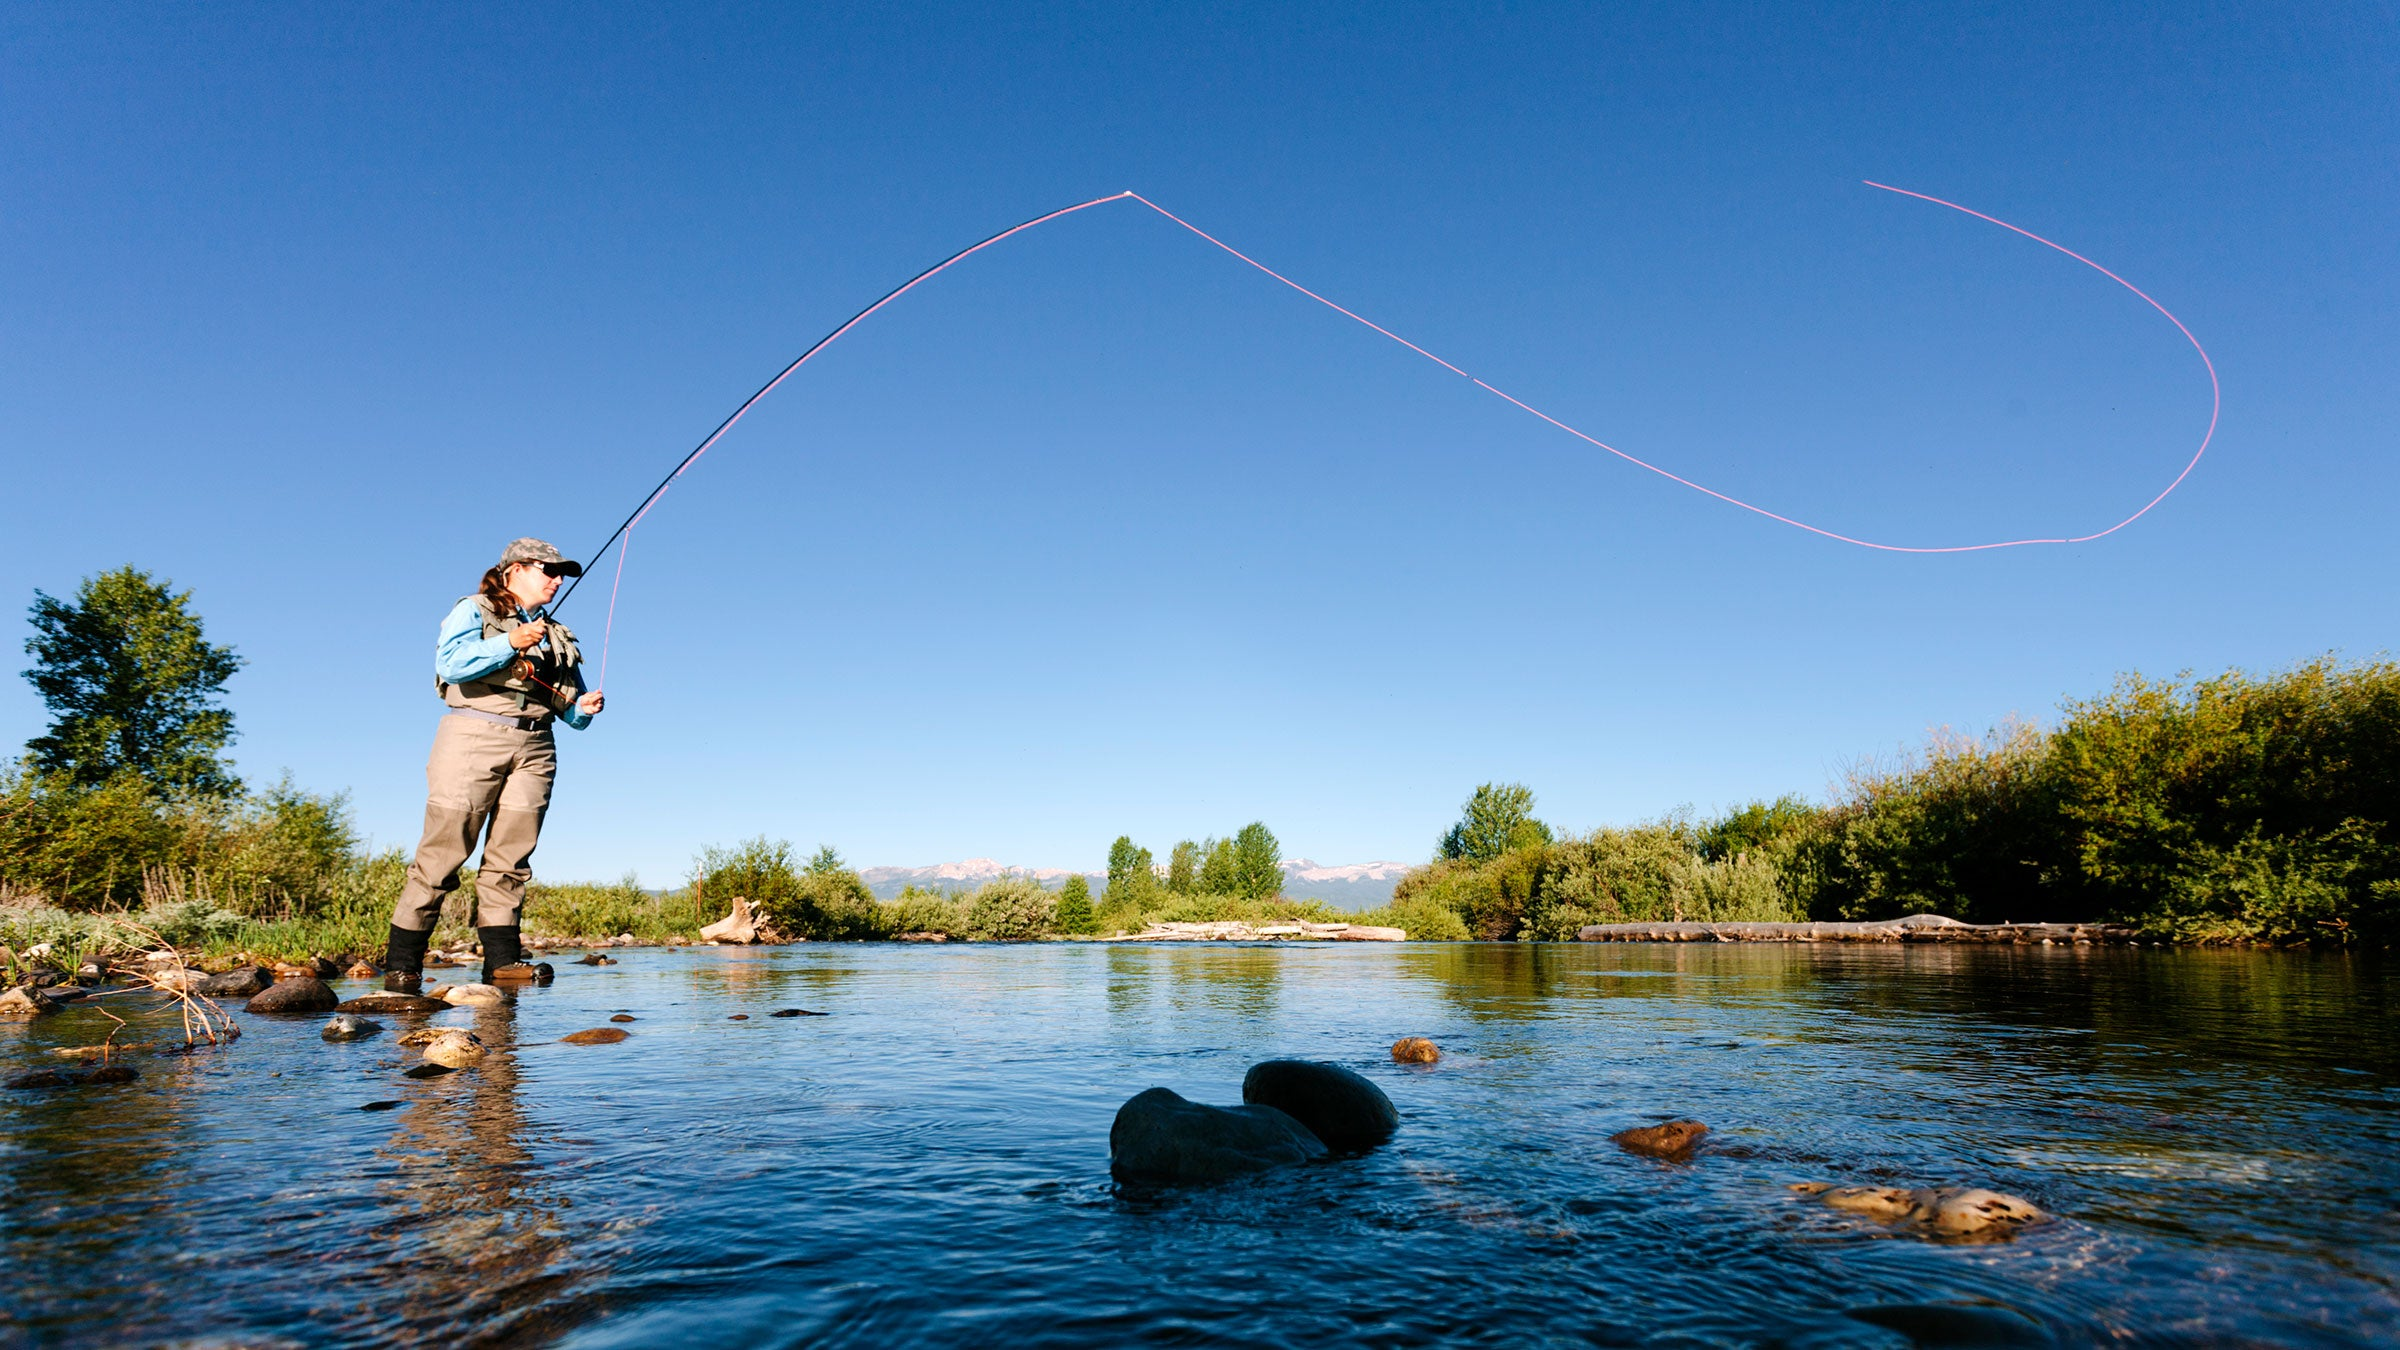 fly fishing getty images 1